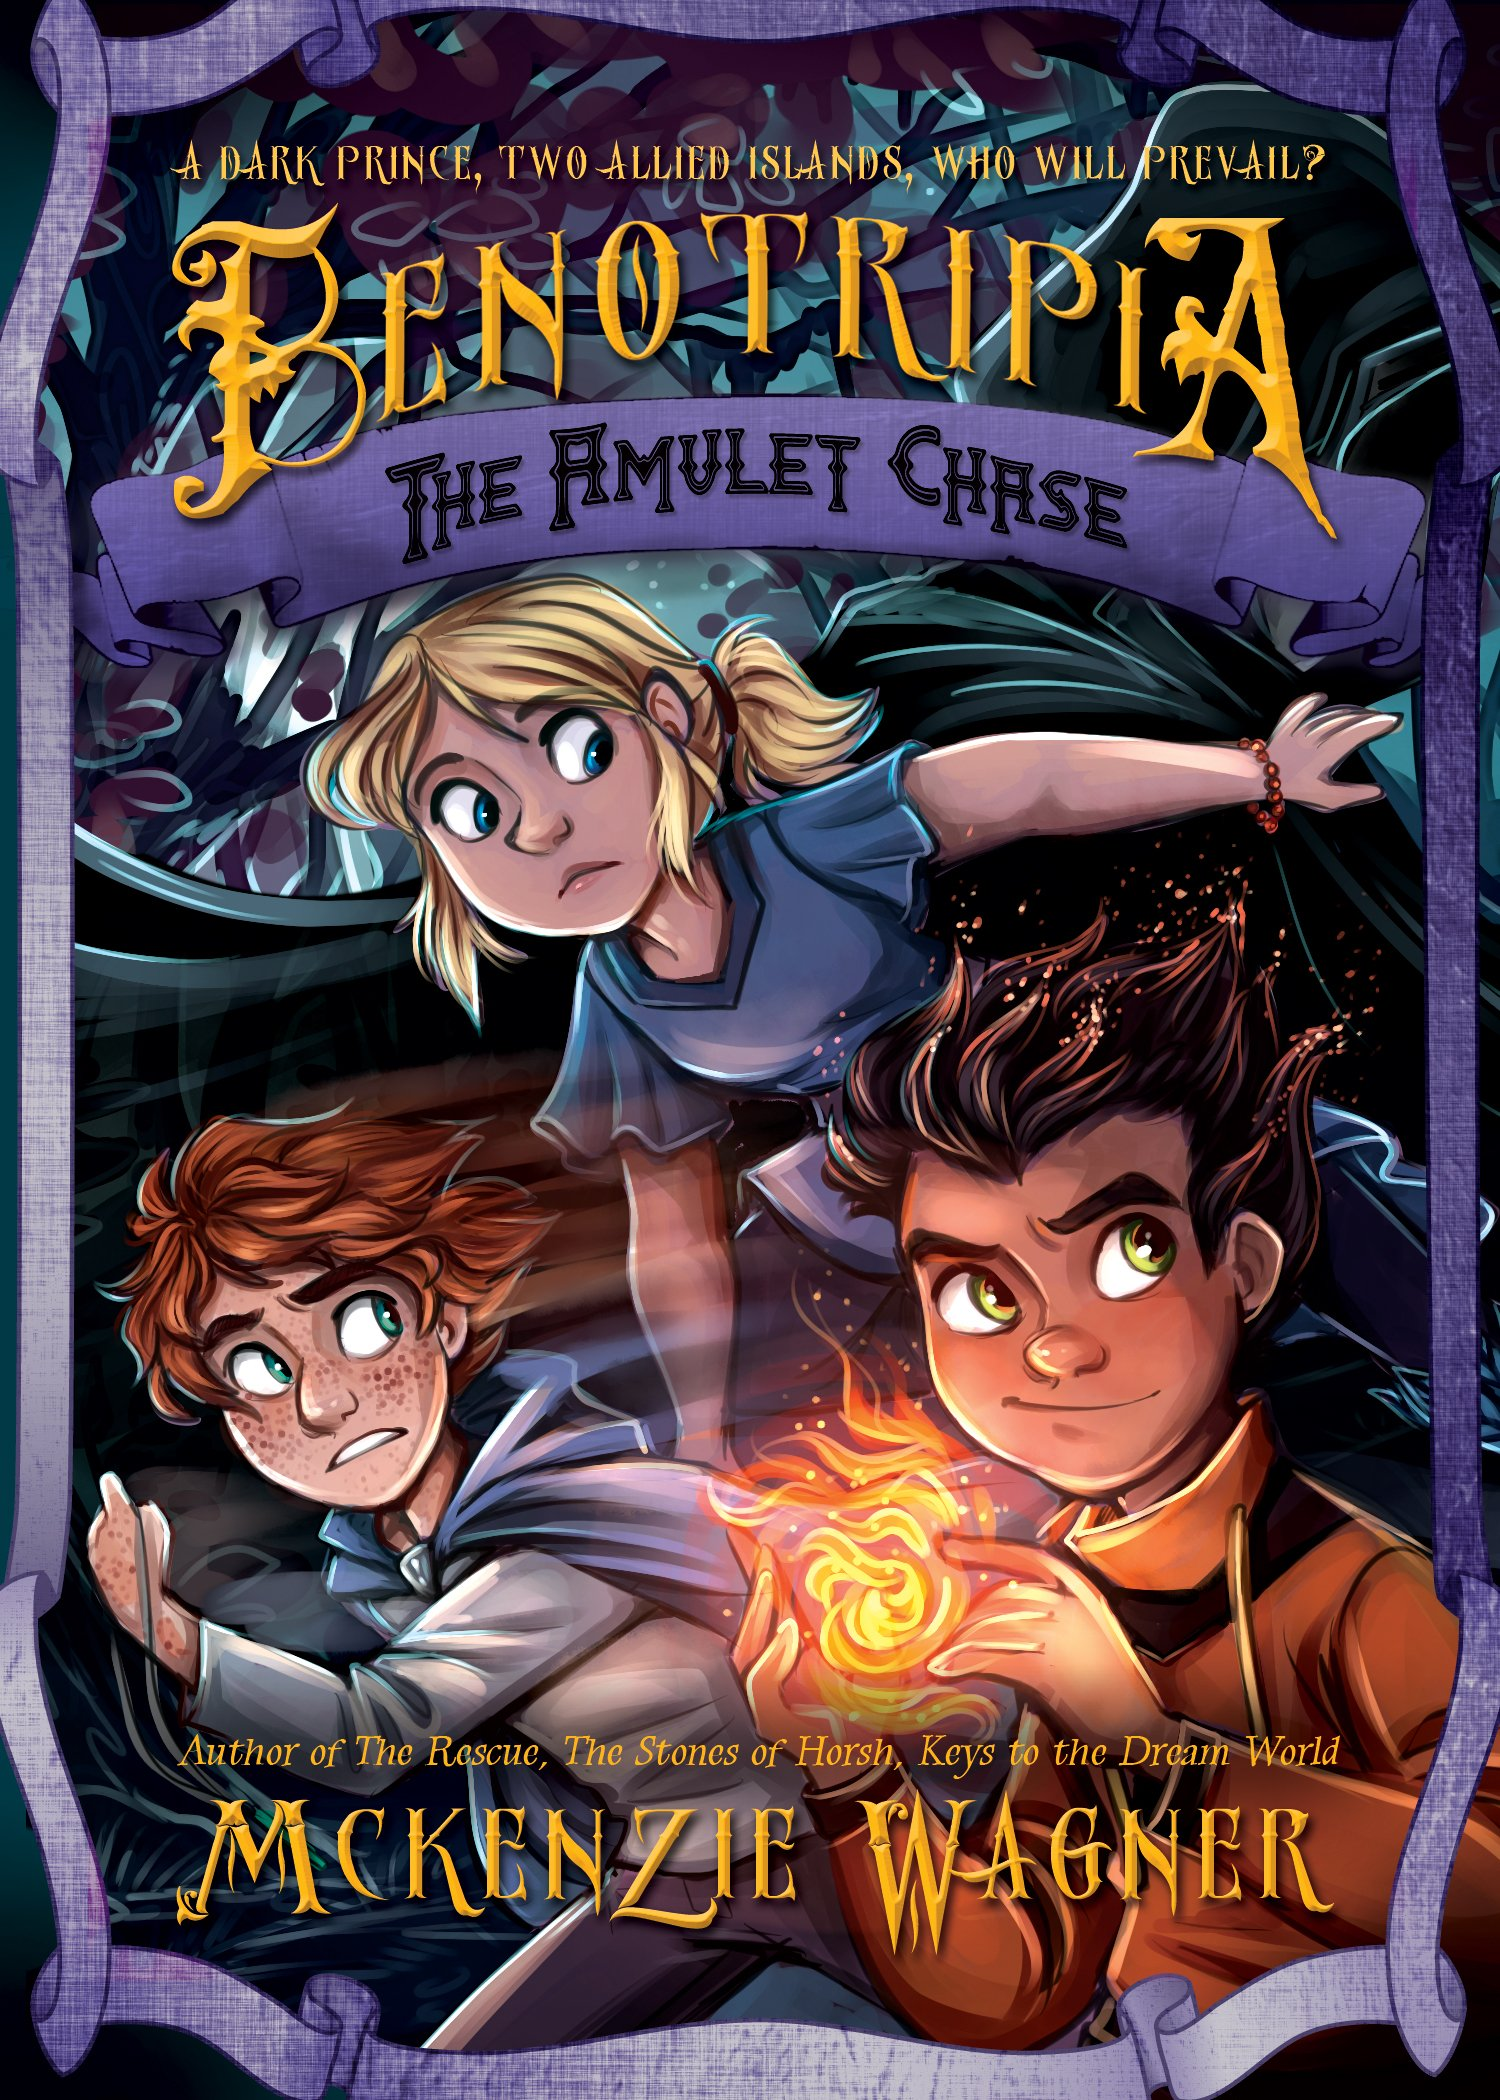 Download The Amulet Chase (Benotripia) pdf